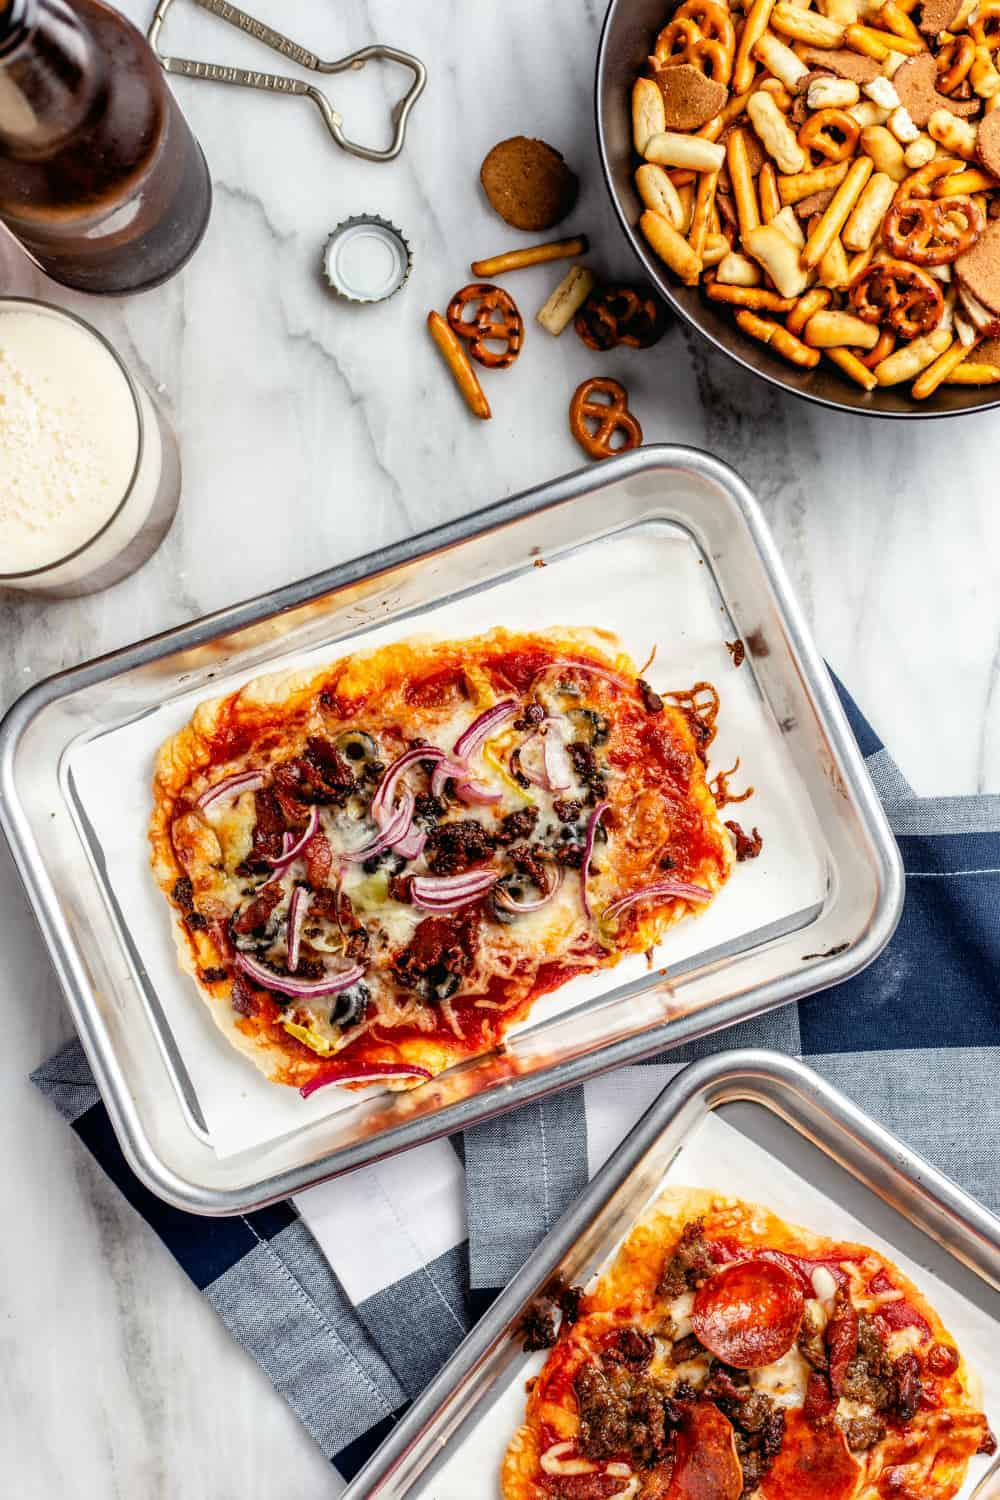 Baked individual pizzas from a DIY pizza bar on mini baking sheets